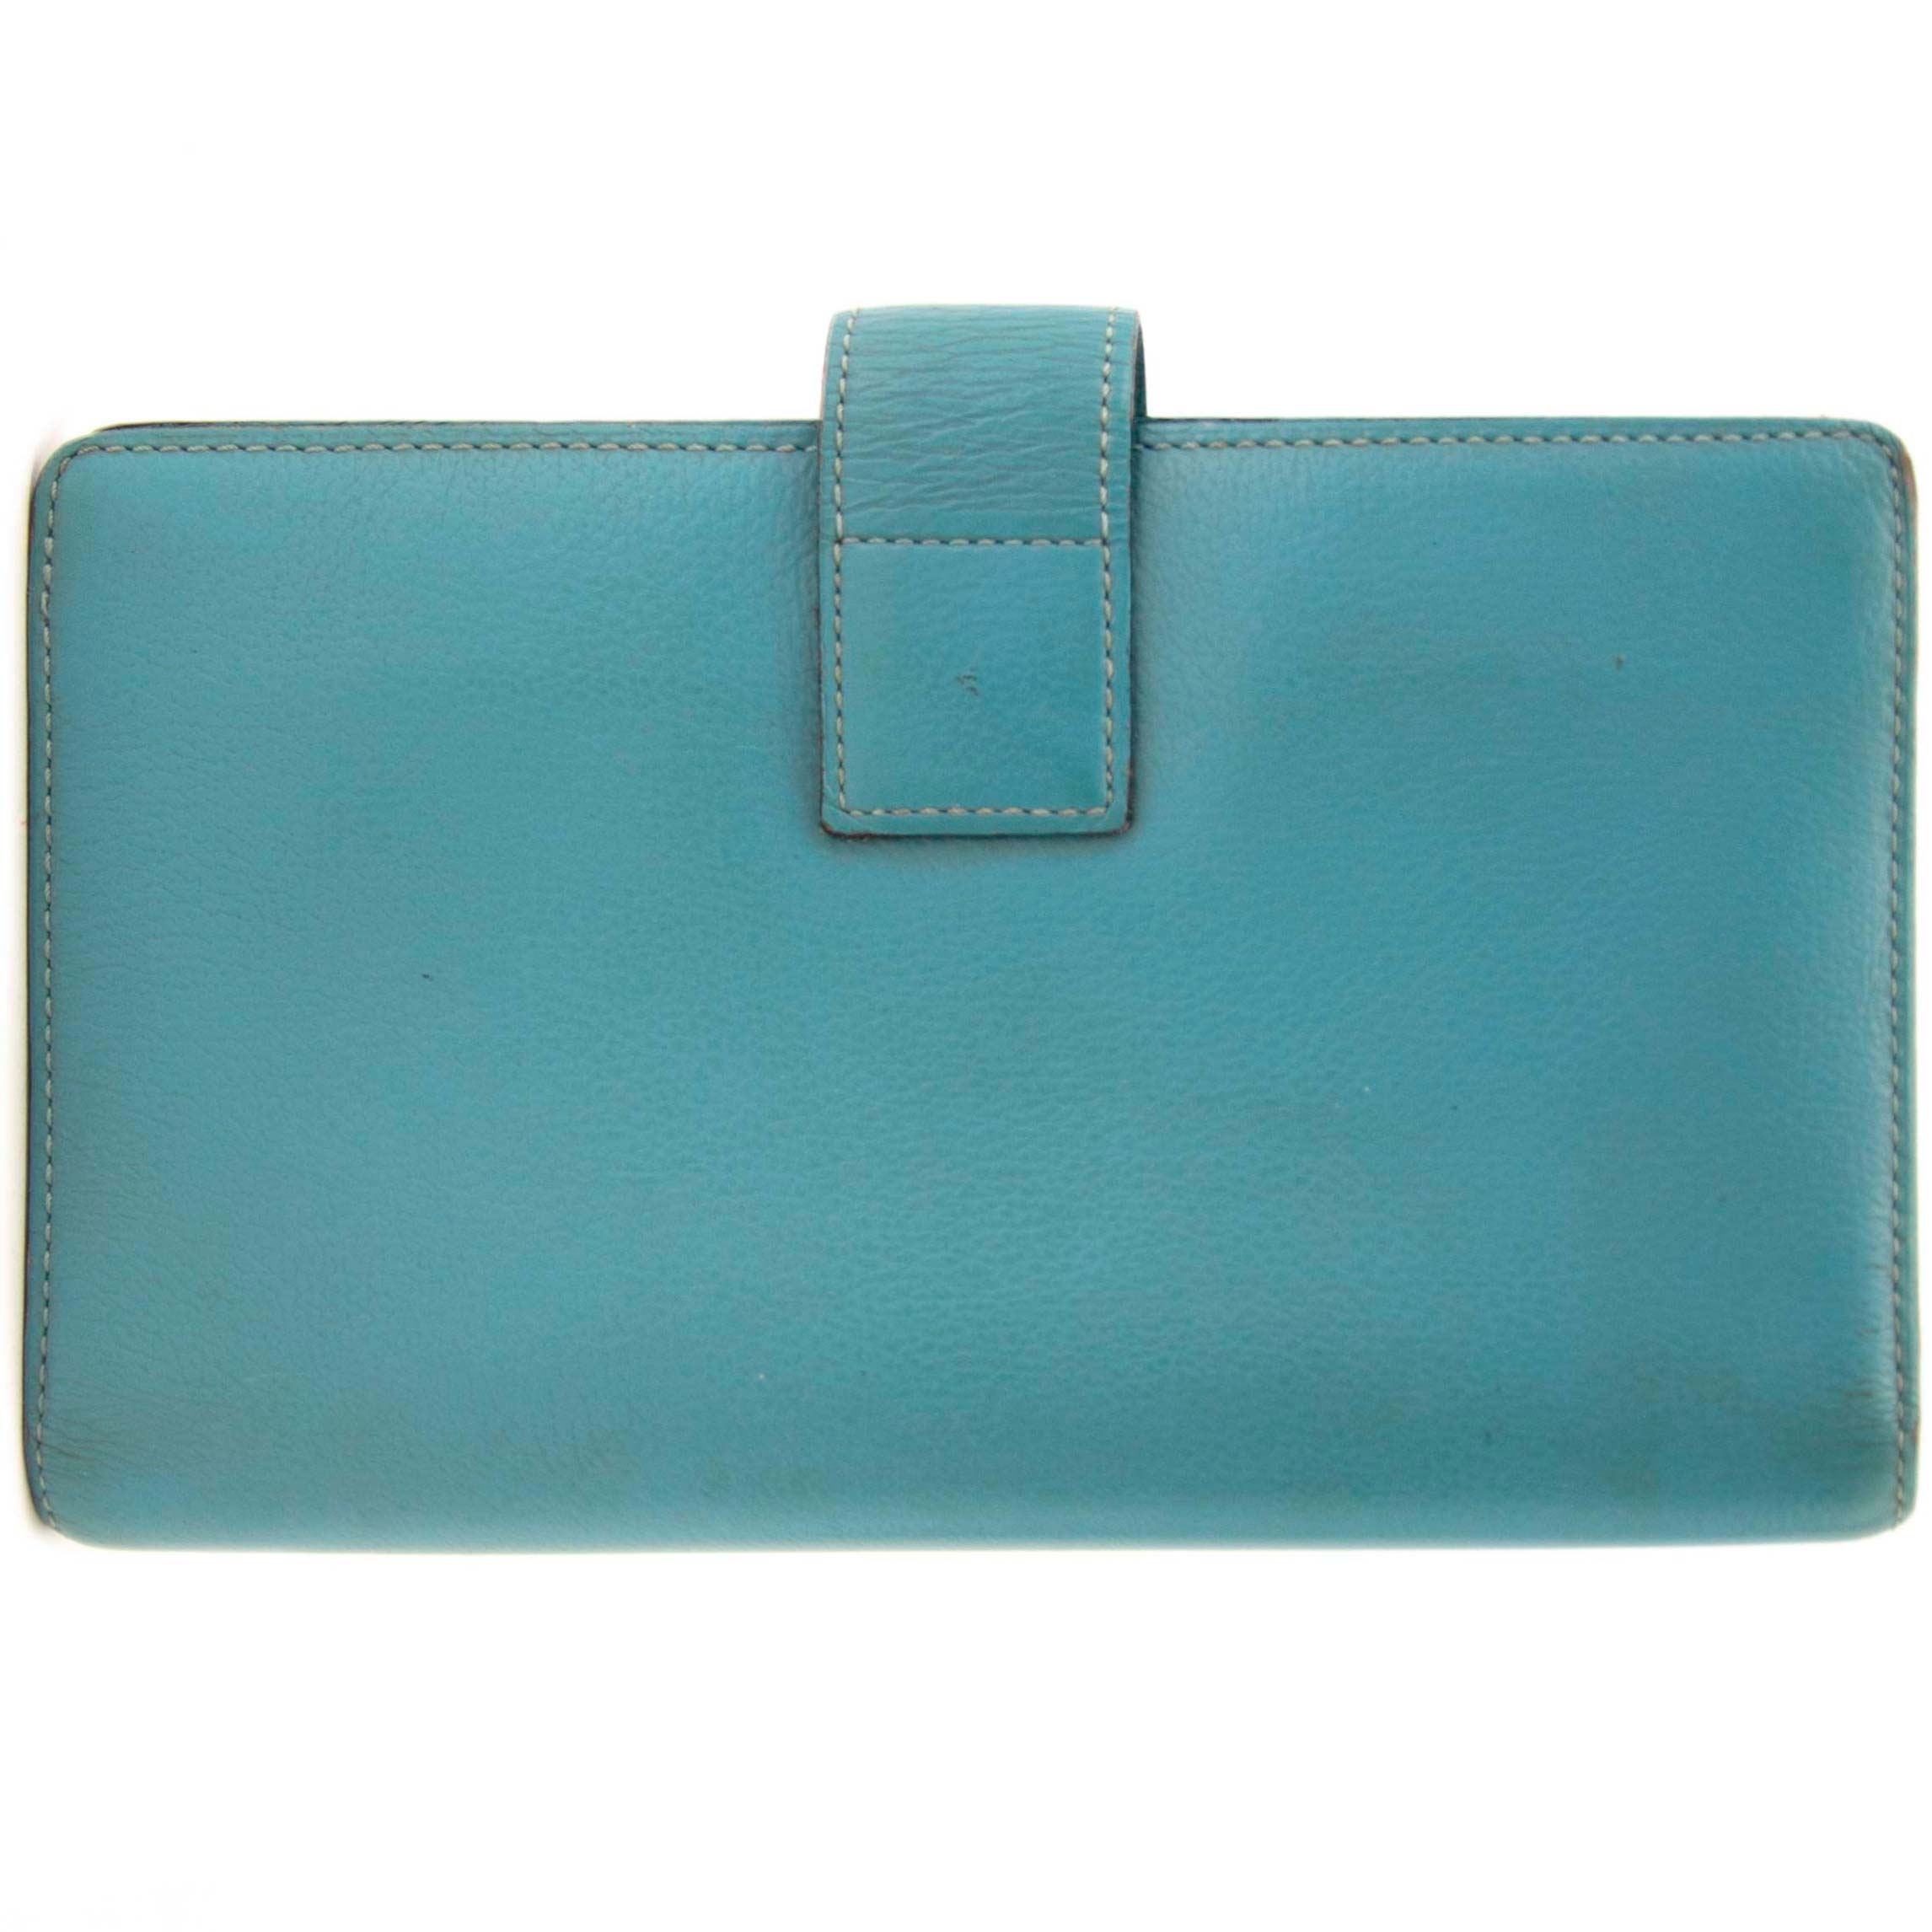 buy secondhand authentic delvaux light blue wallet at Labellov, online vintage webshop. Safe and secure shopping.